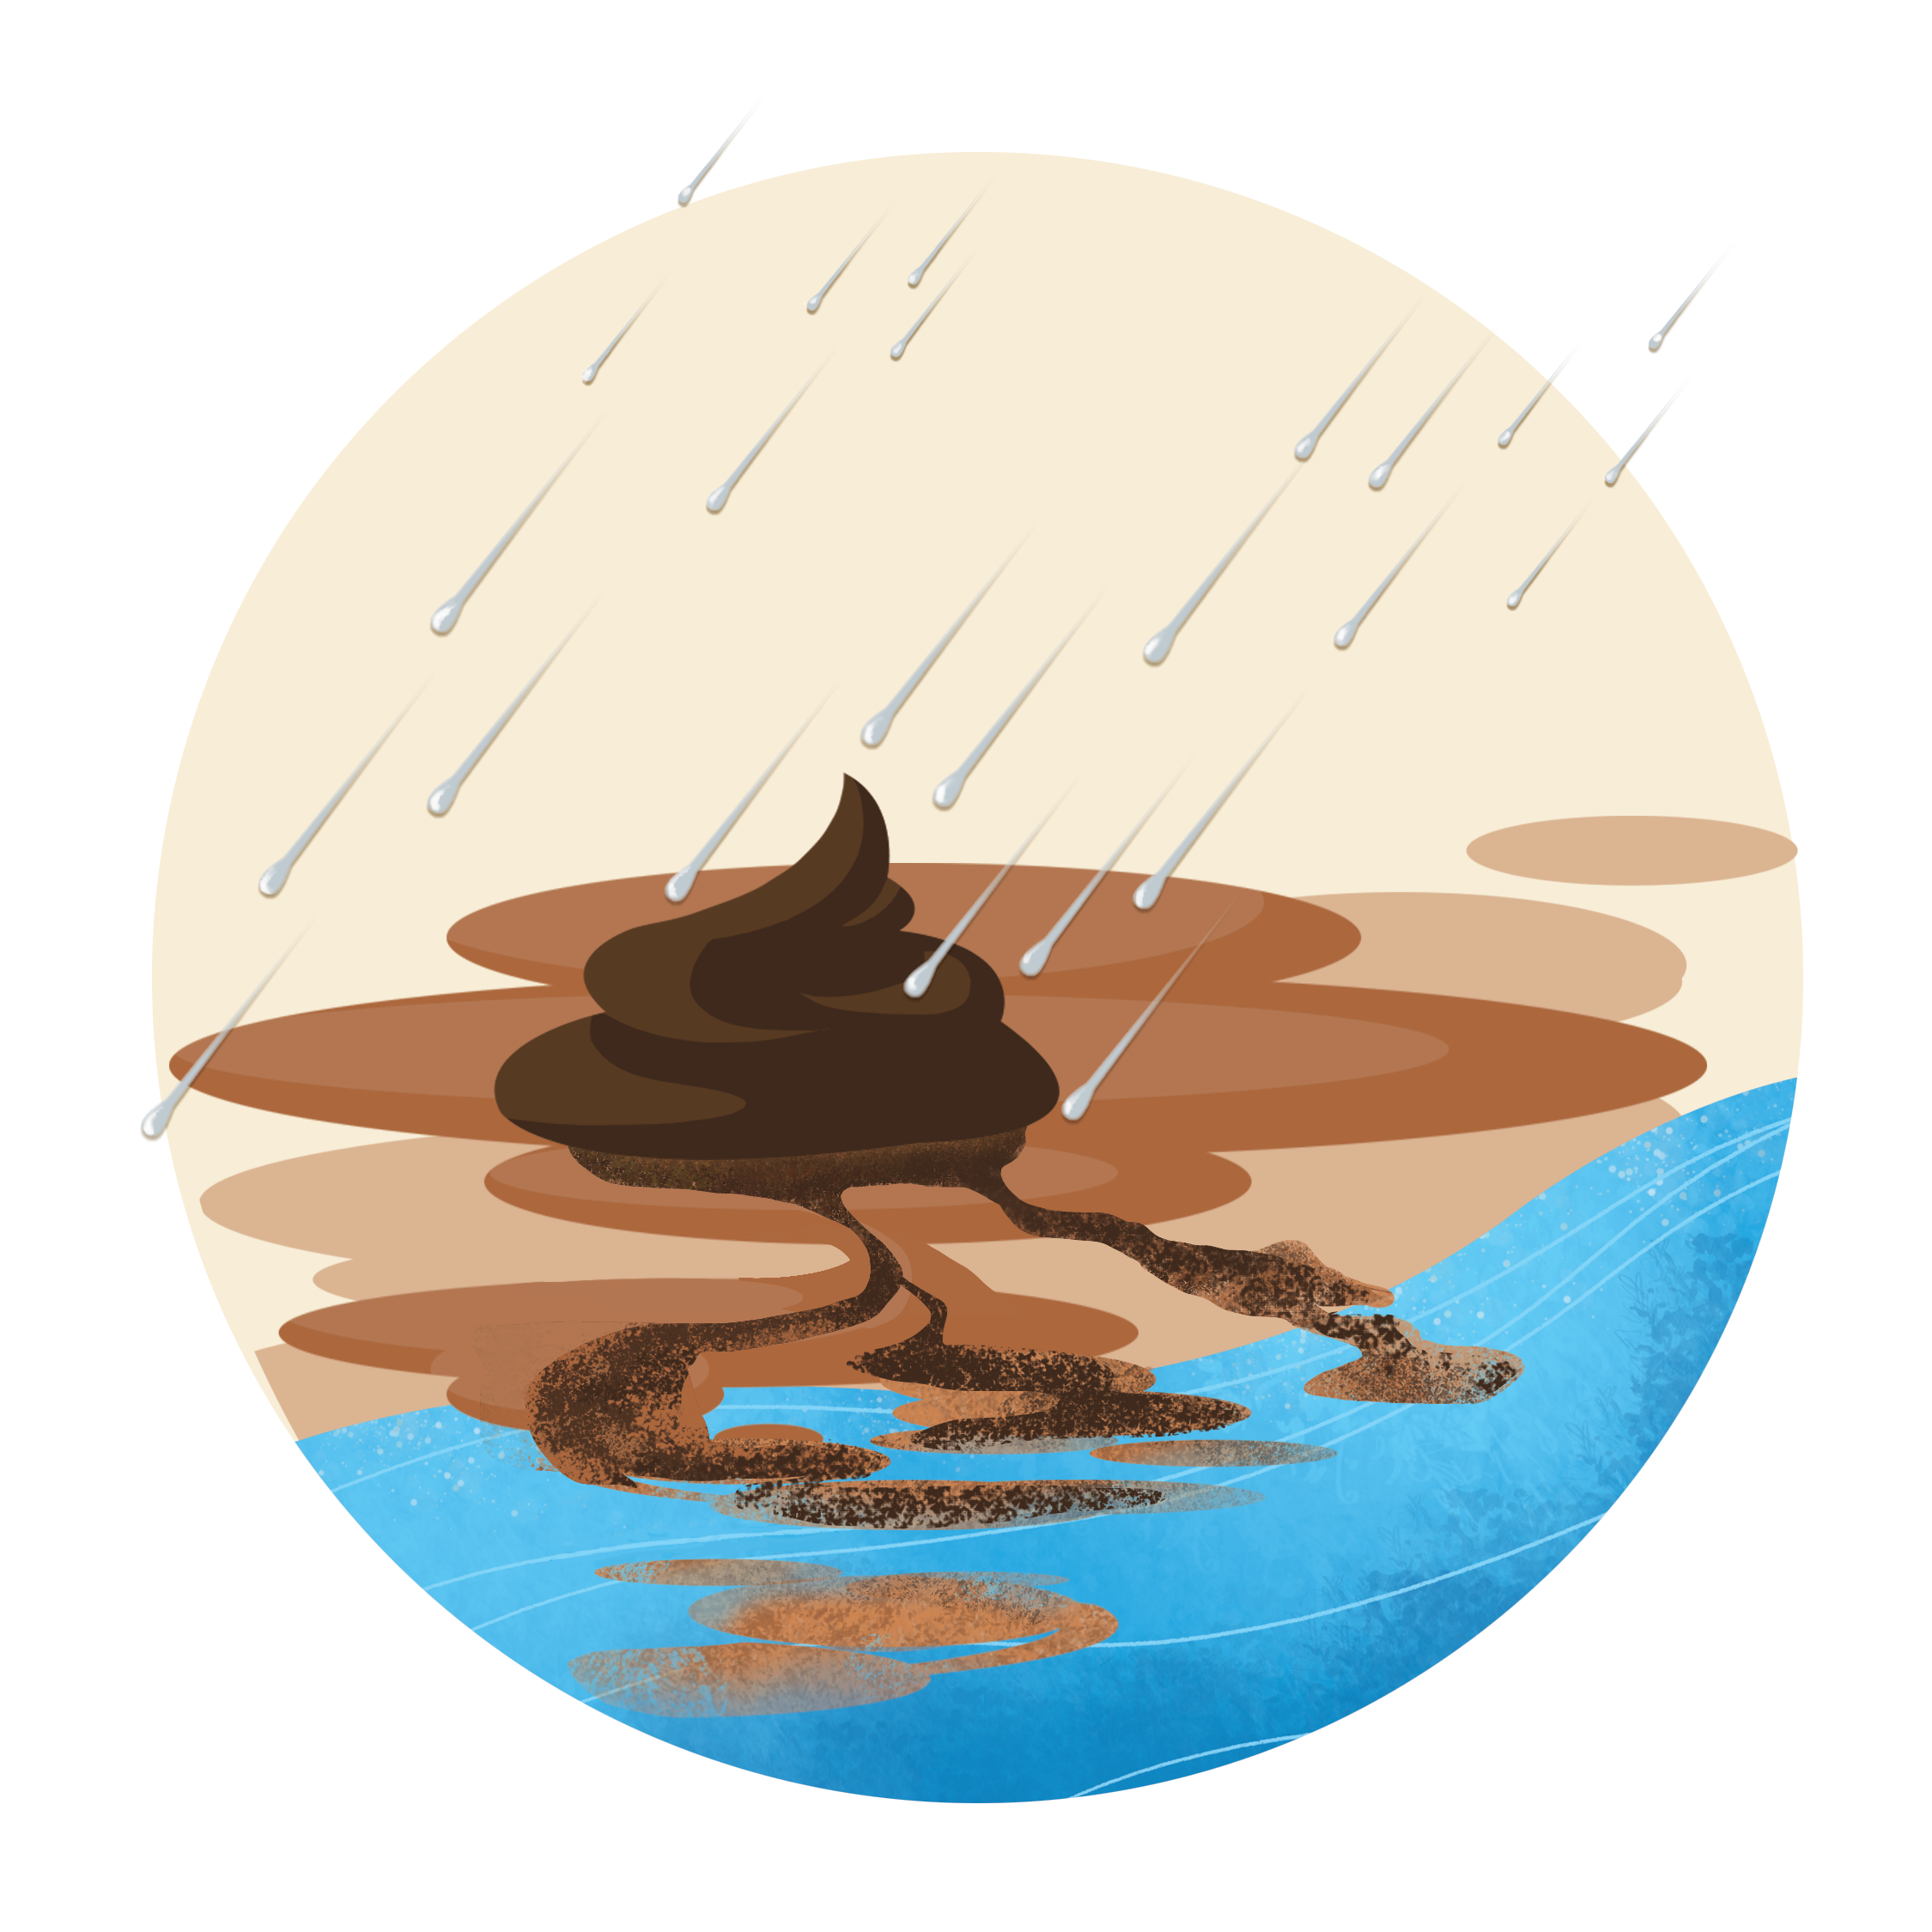 2a-rain-on-poos-goes-into-river-poo-melting